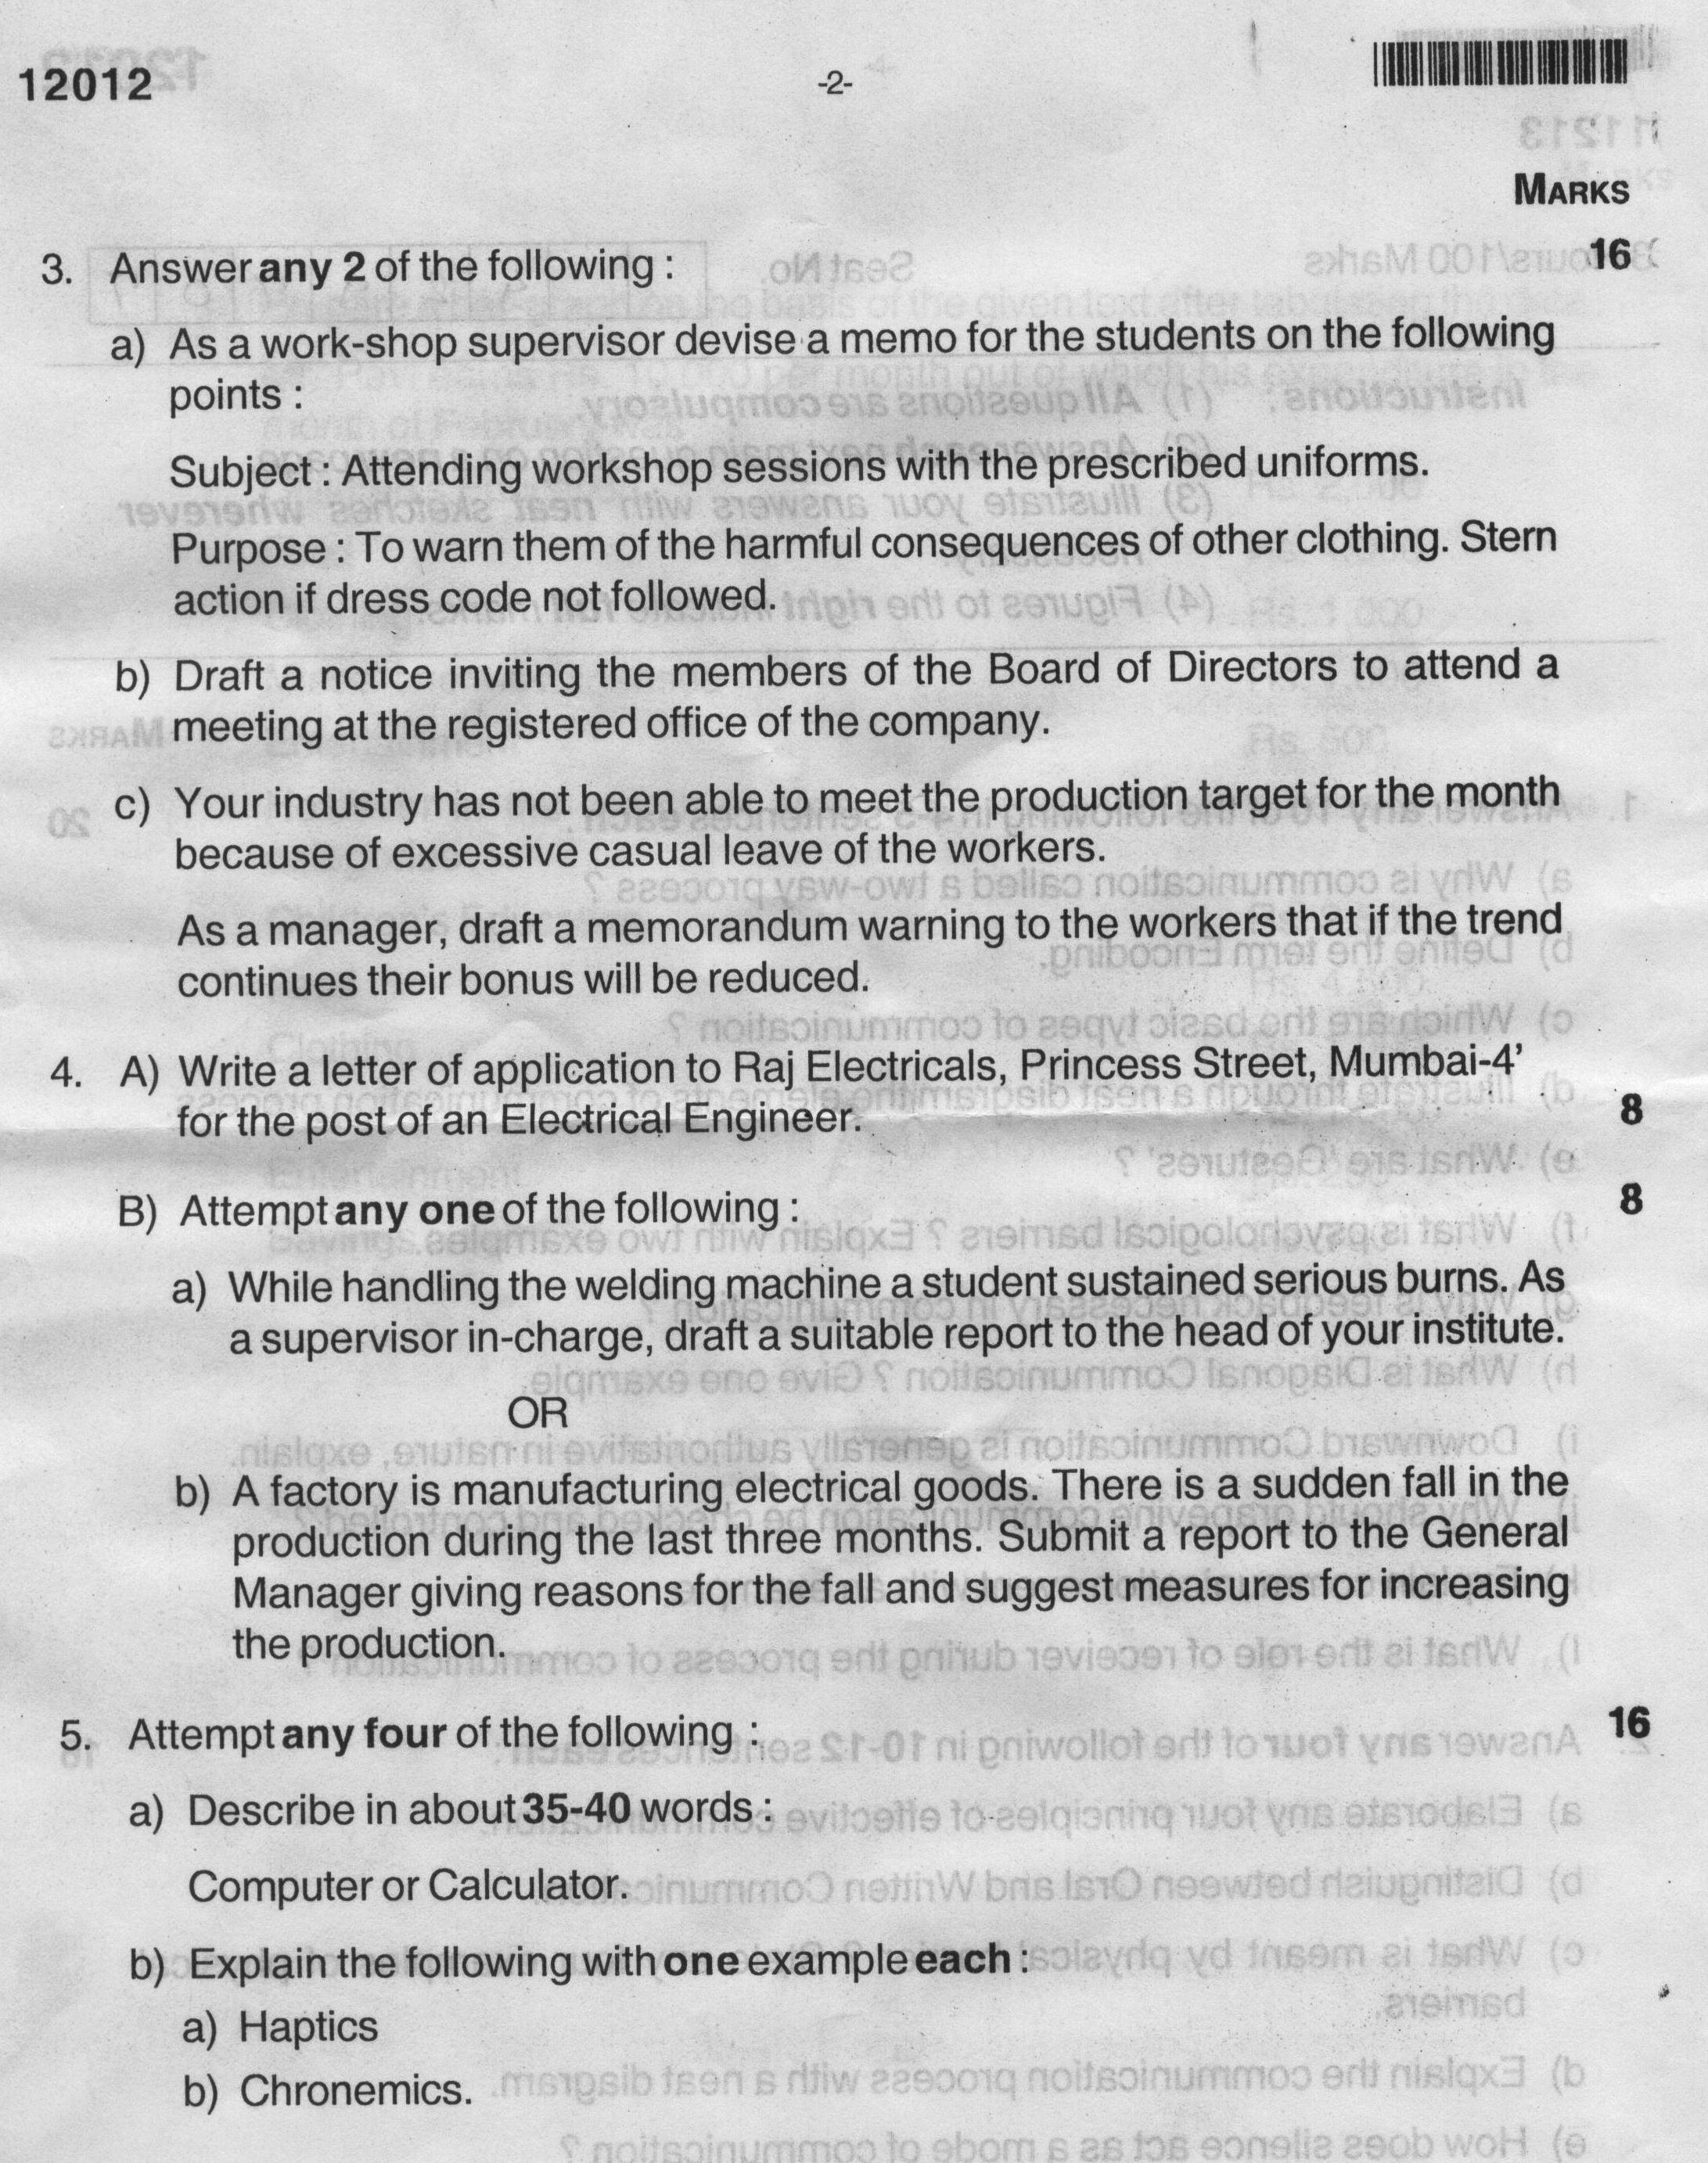 maharashtra state board of technical education msbte question msbte question paper for diploma all trades of engineering group second semester subject communication skills 12012